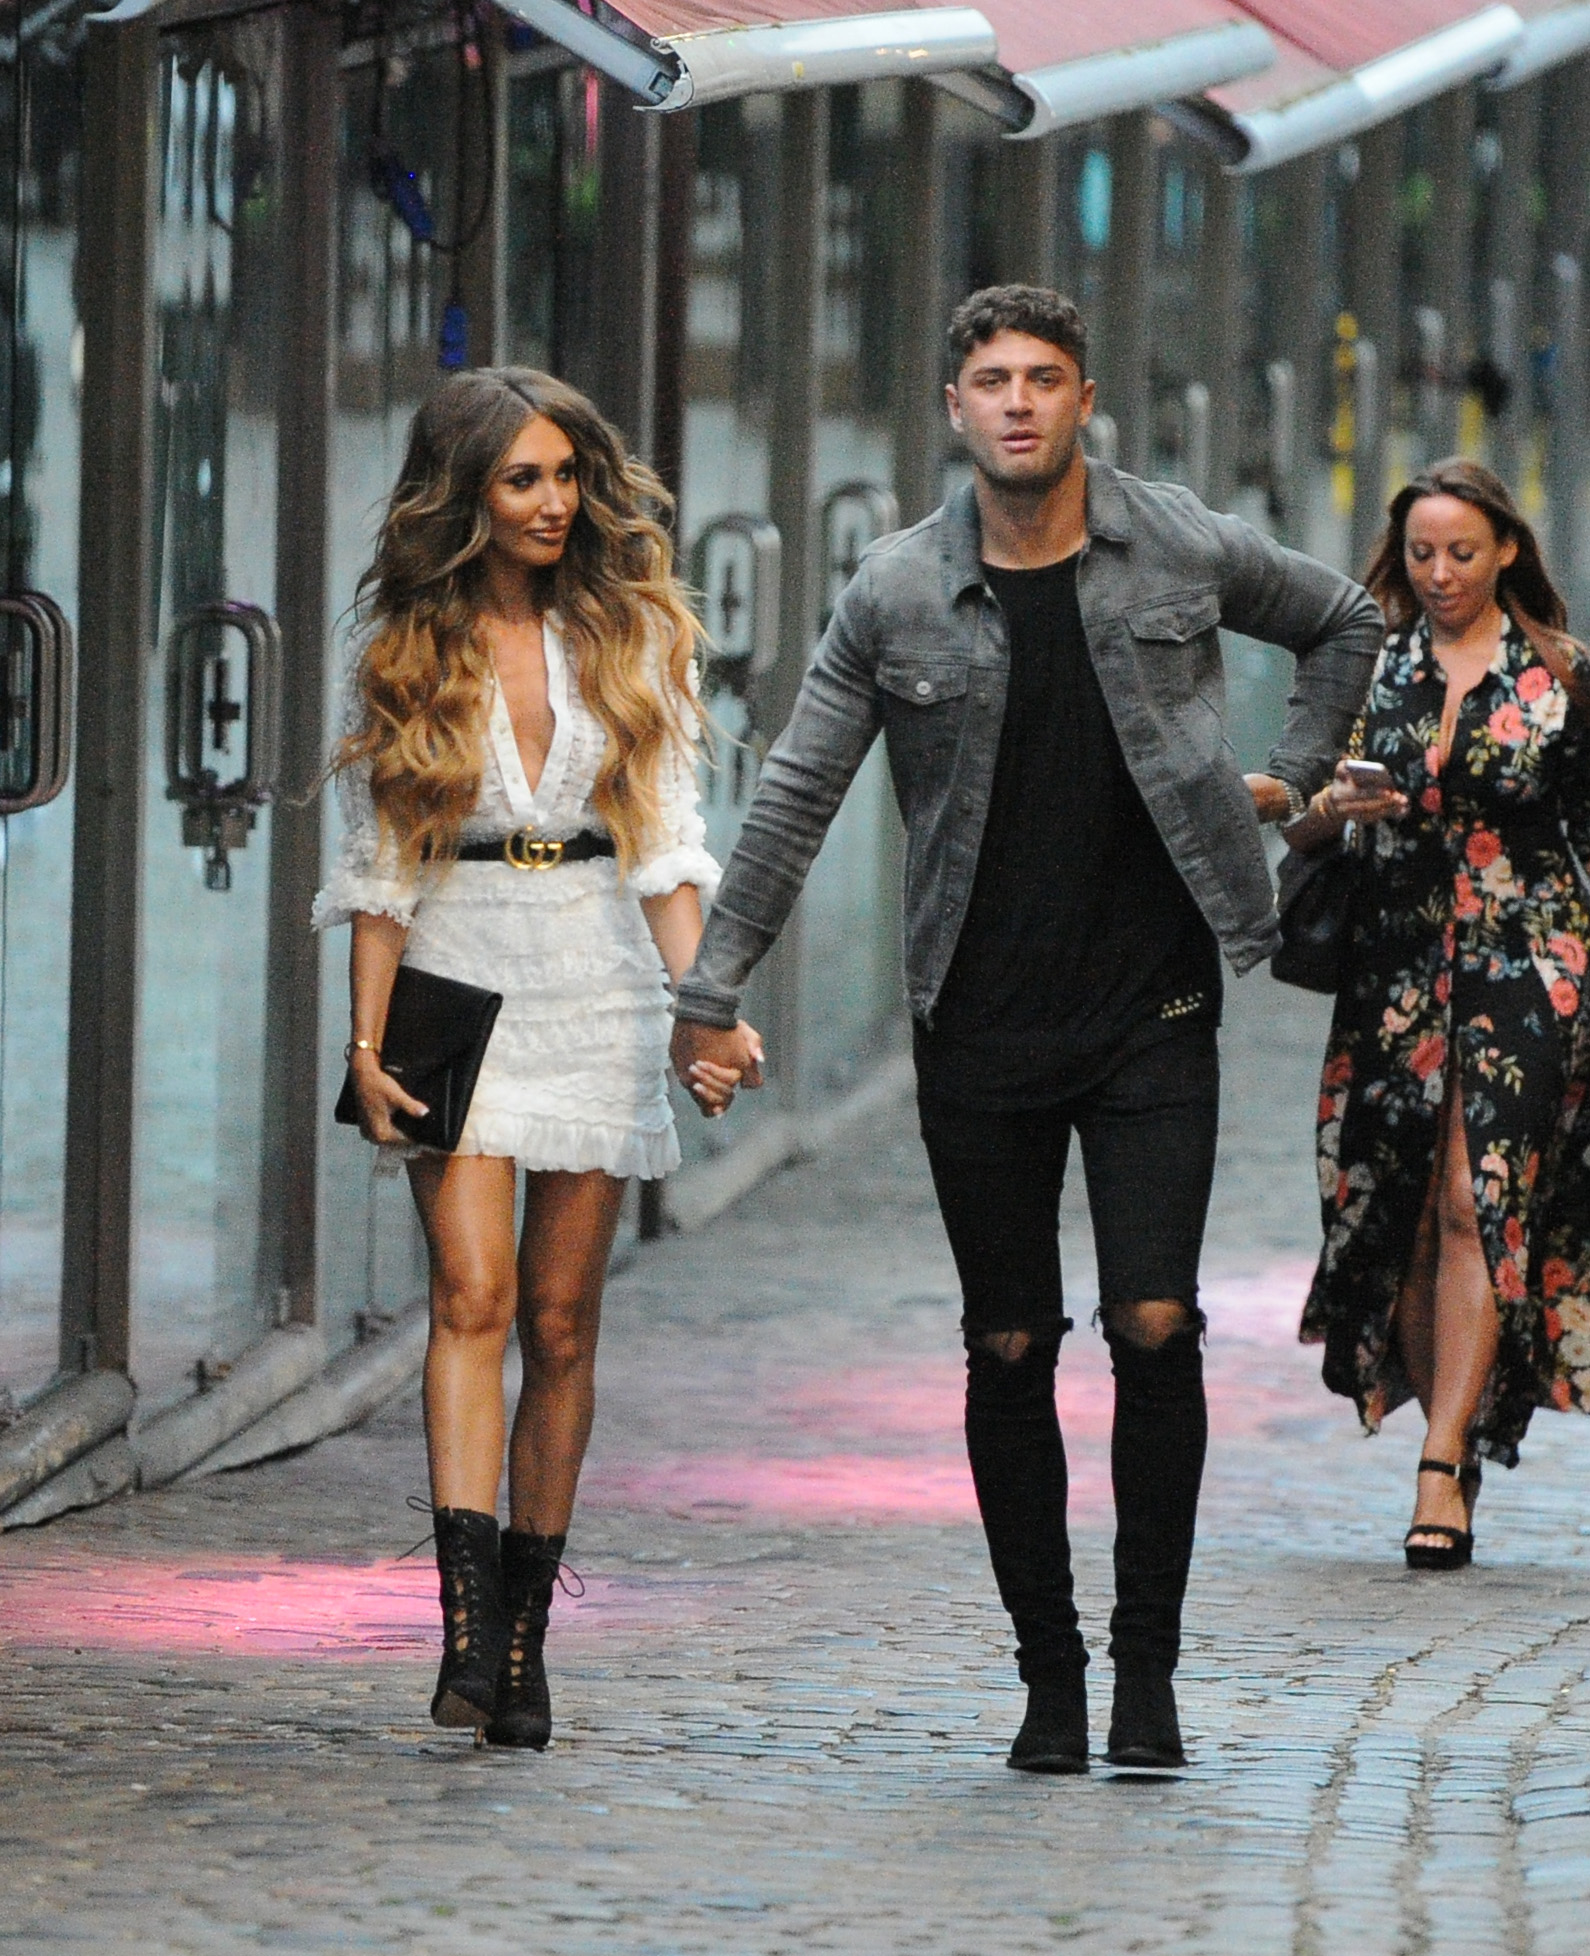 Megan Mckenna and Mike Thalassitis seen arriving at Fest in Camden for the 2018 Love Island Official Screening.